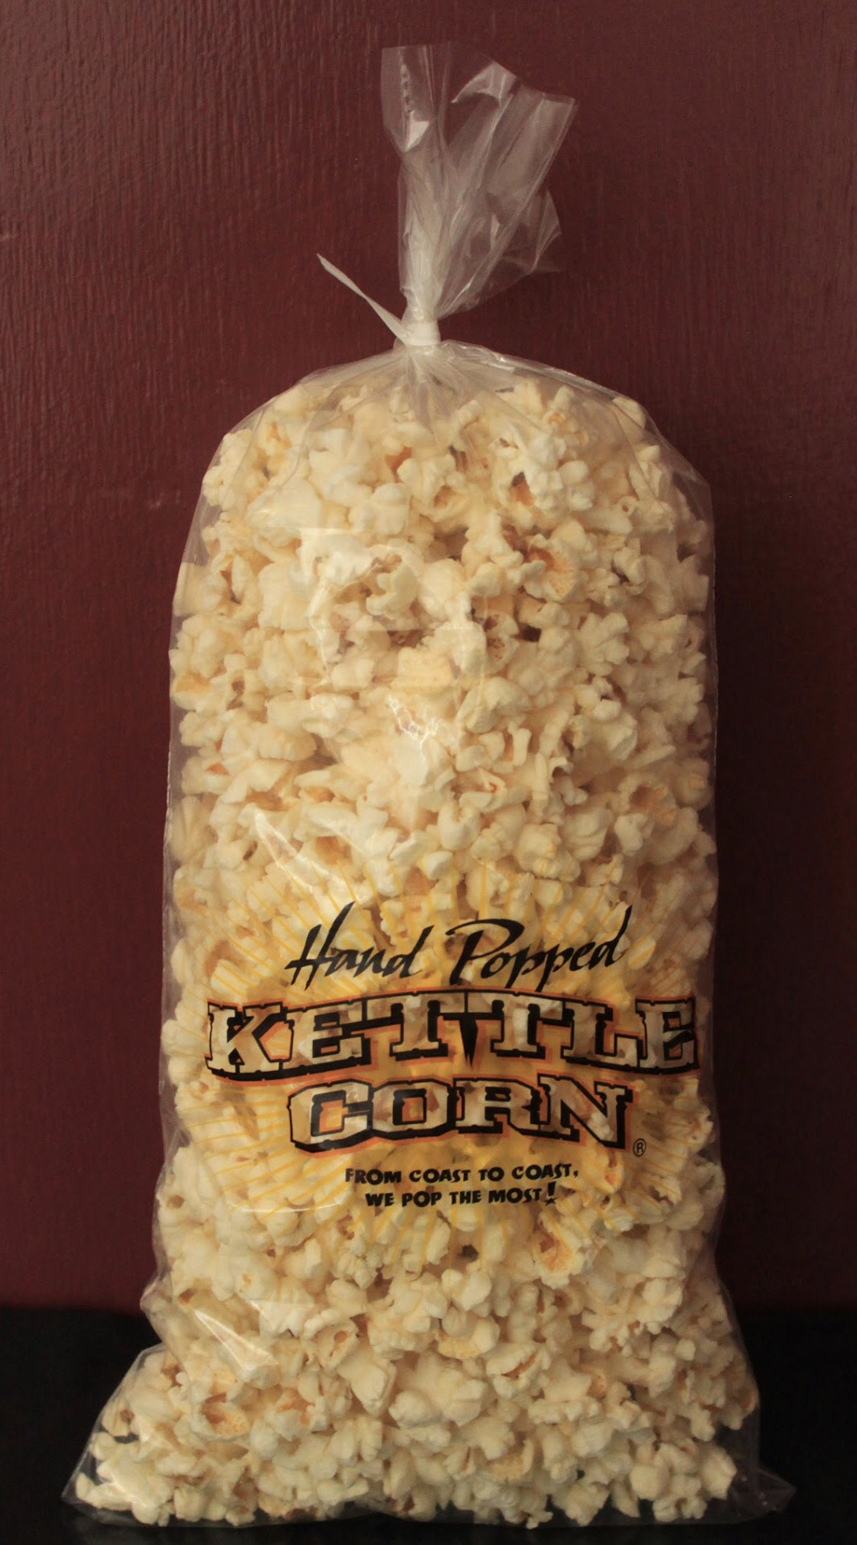 Kettle corn bag